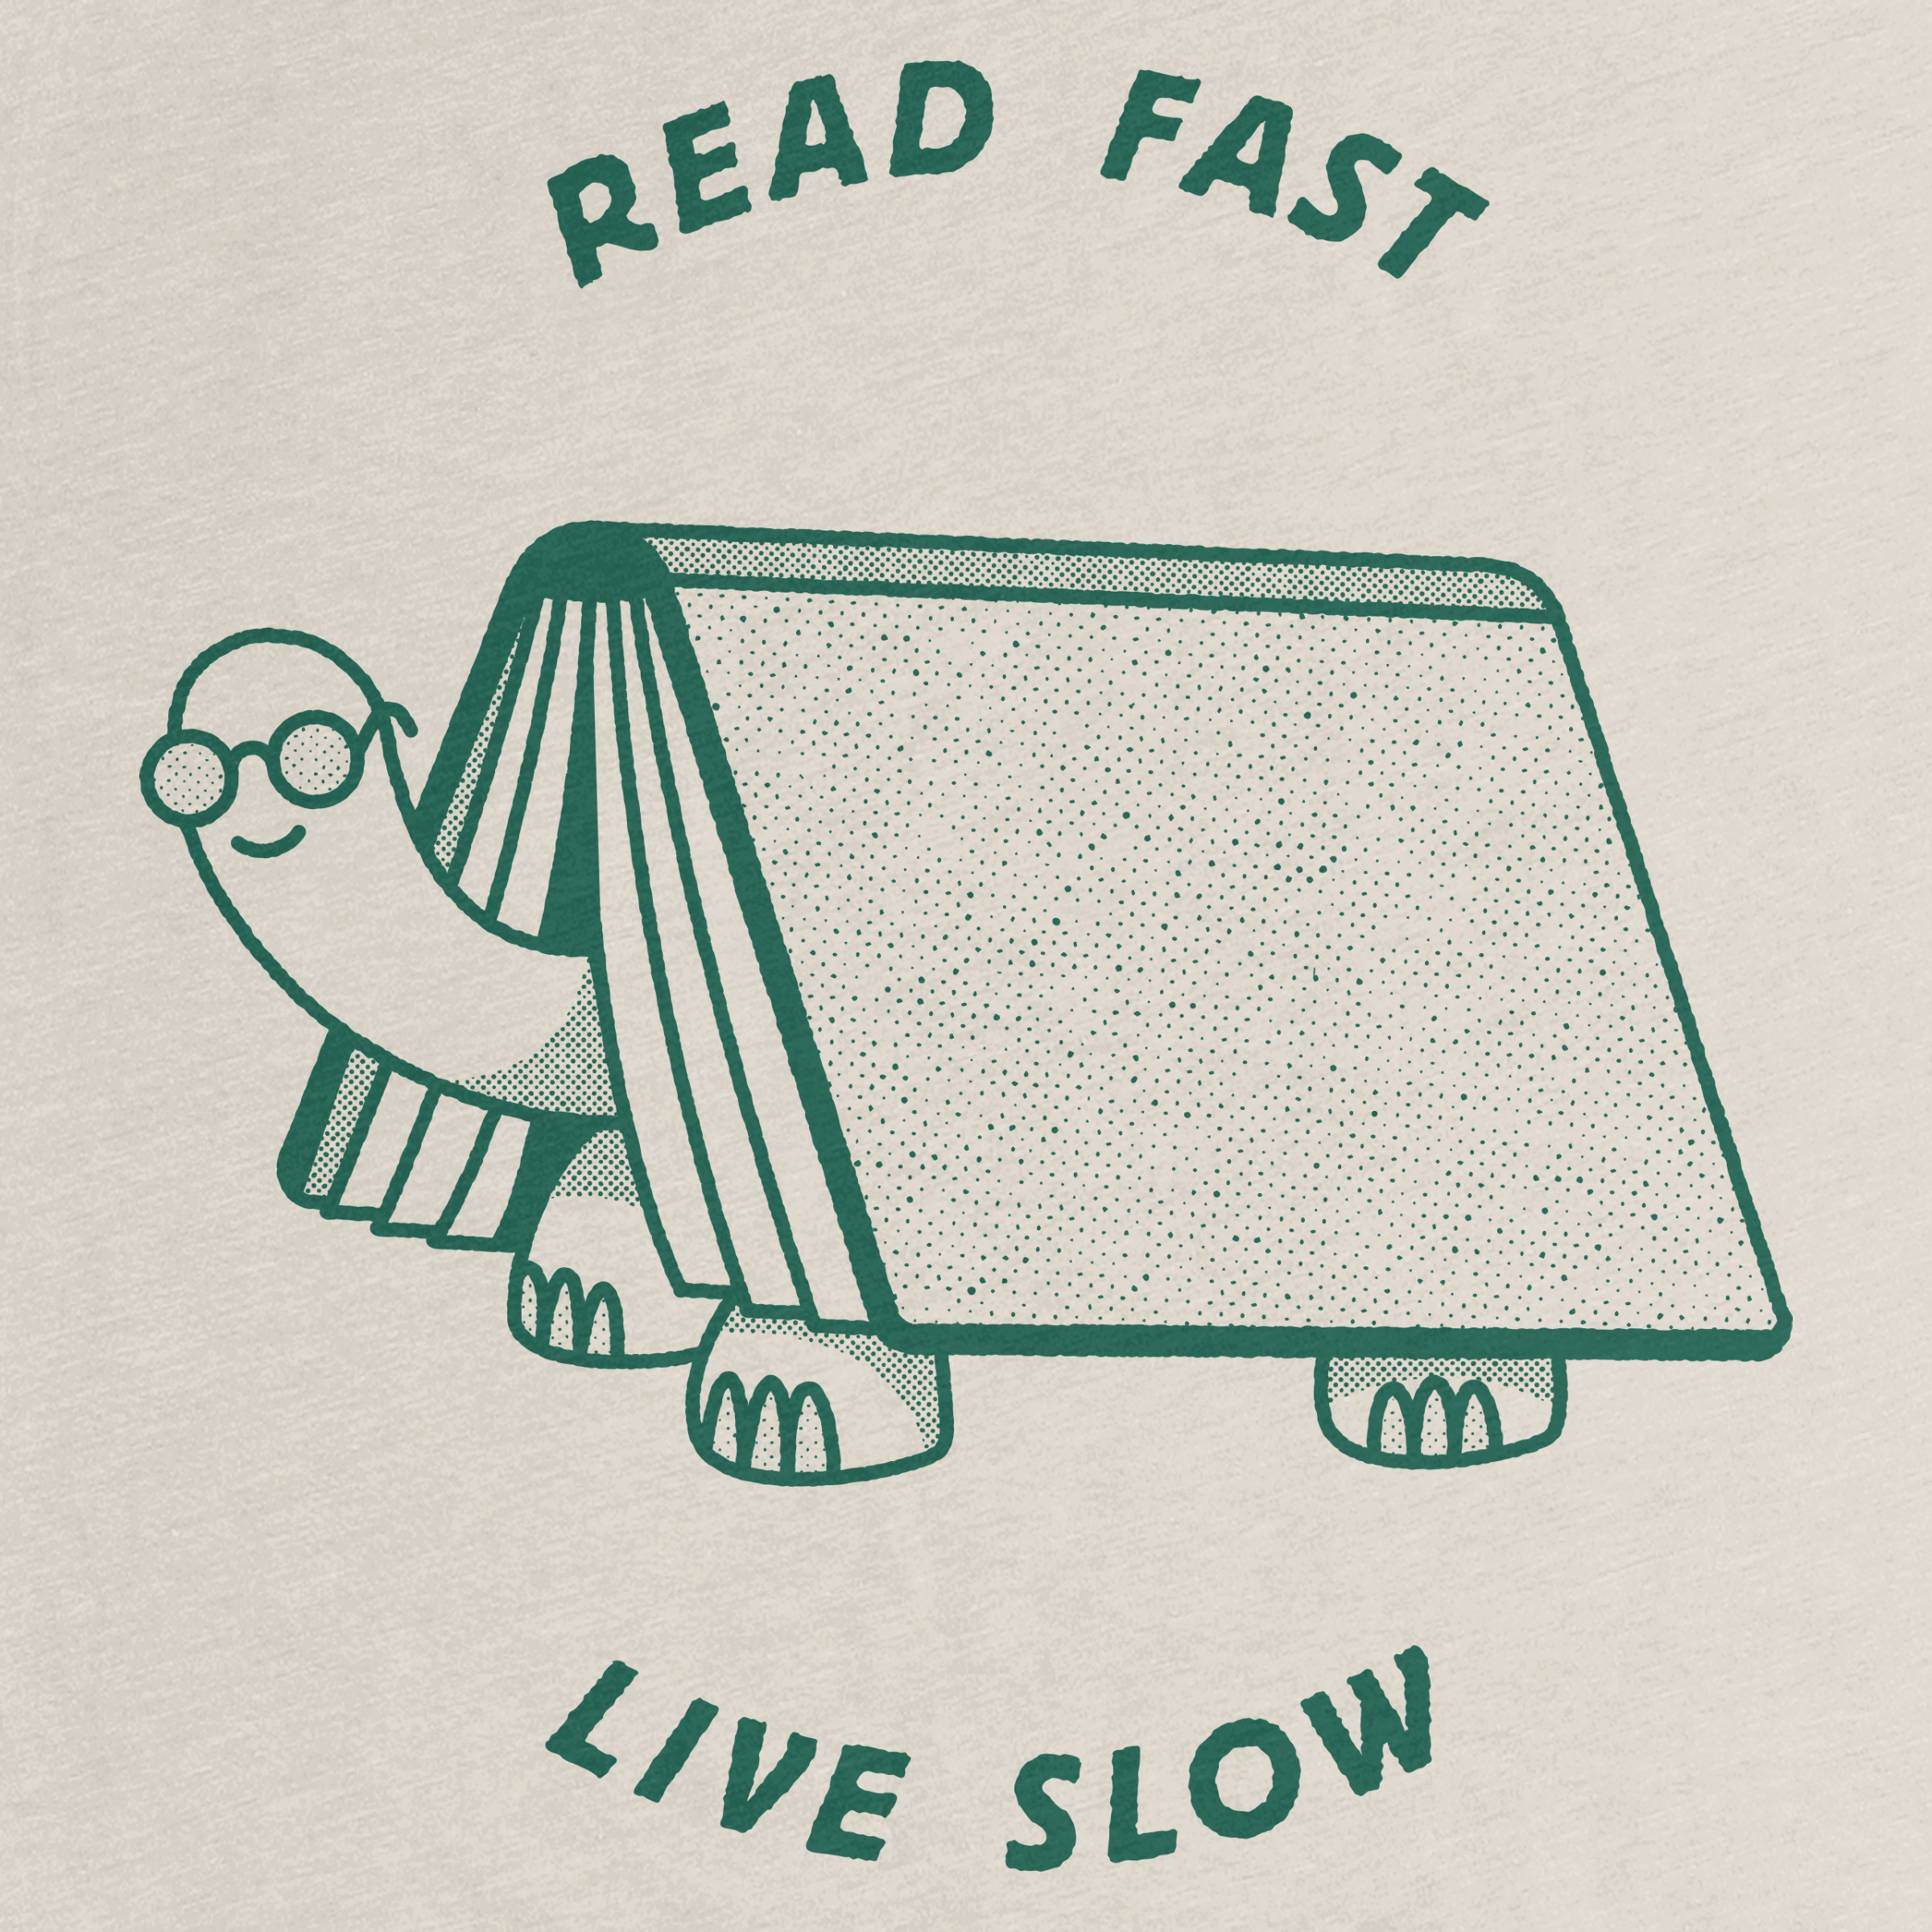 Read Fast, Live Slow